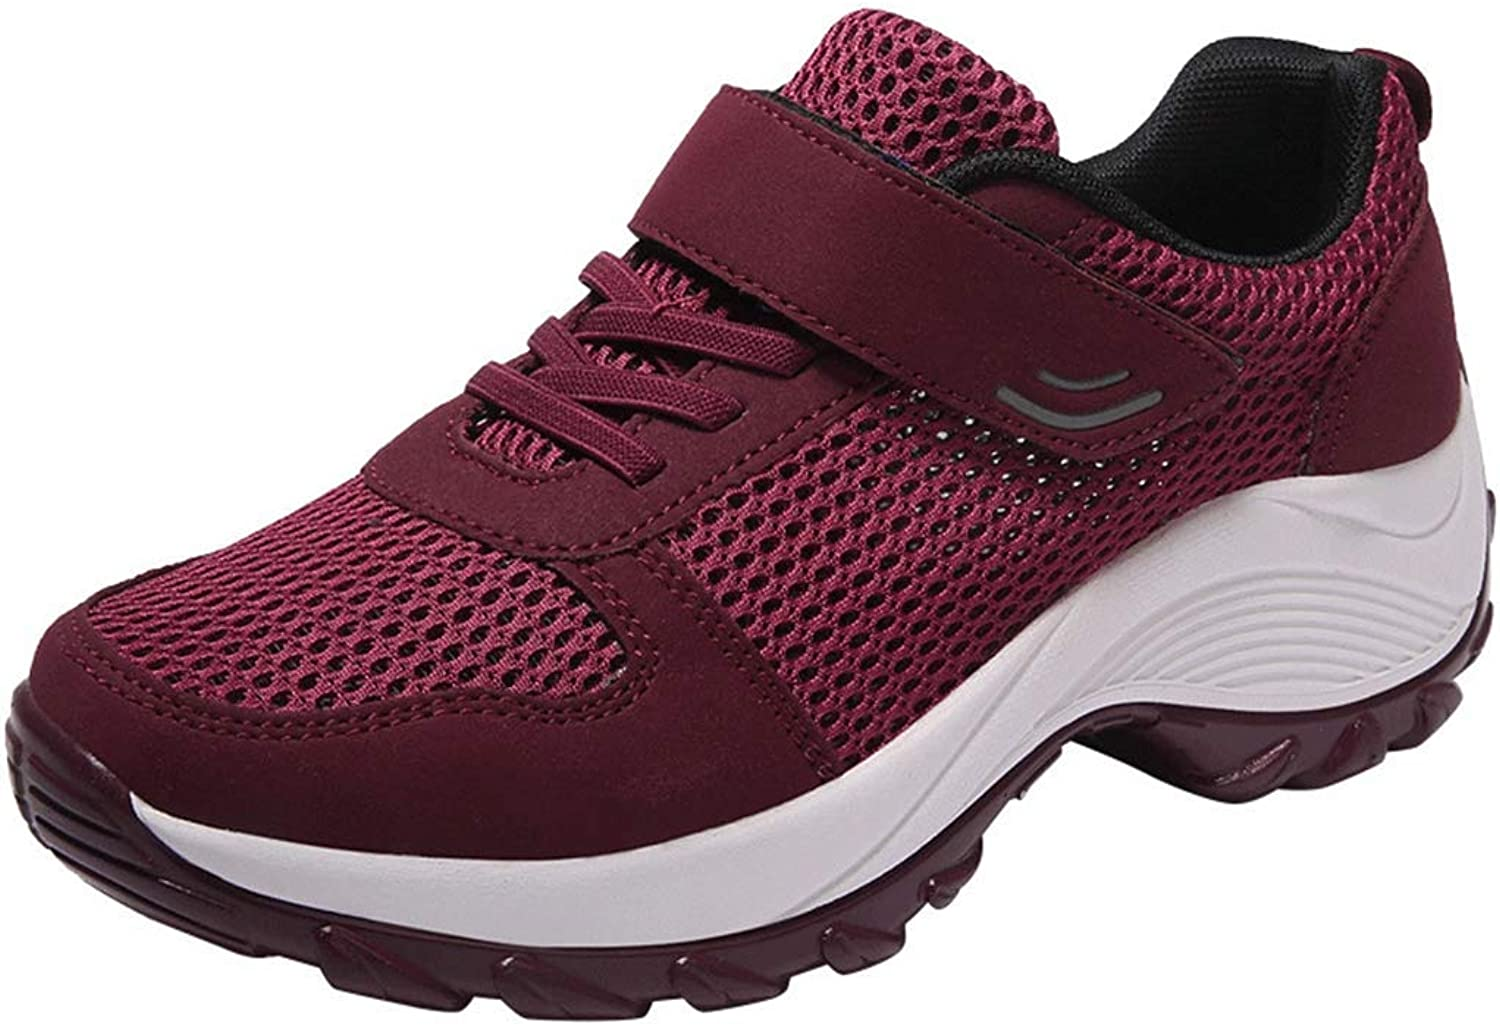 Fashion shoesbox Women's Sports Sneakers Non Slip Lightweight Casual Athletic shoes Mesh Air Running Walking shoes